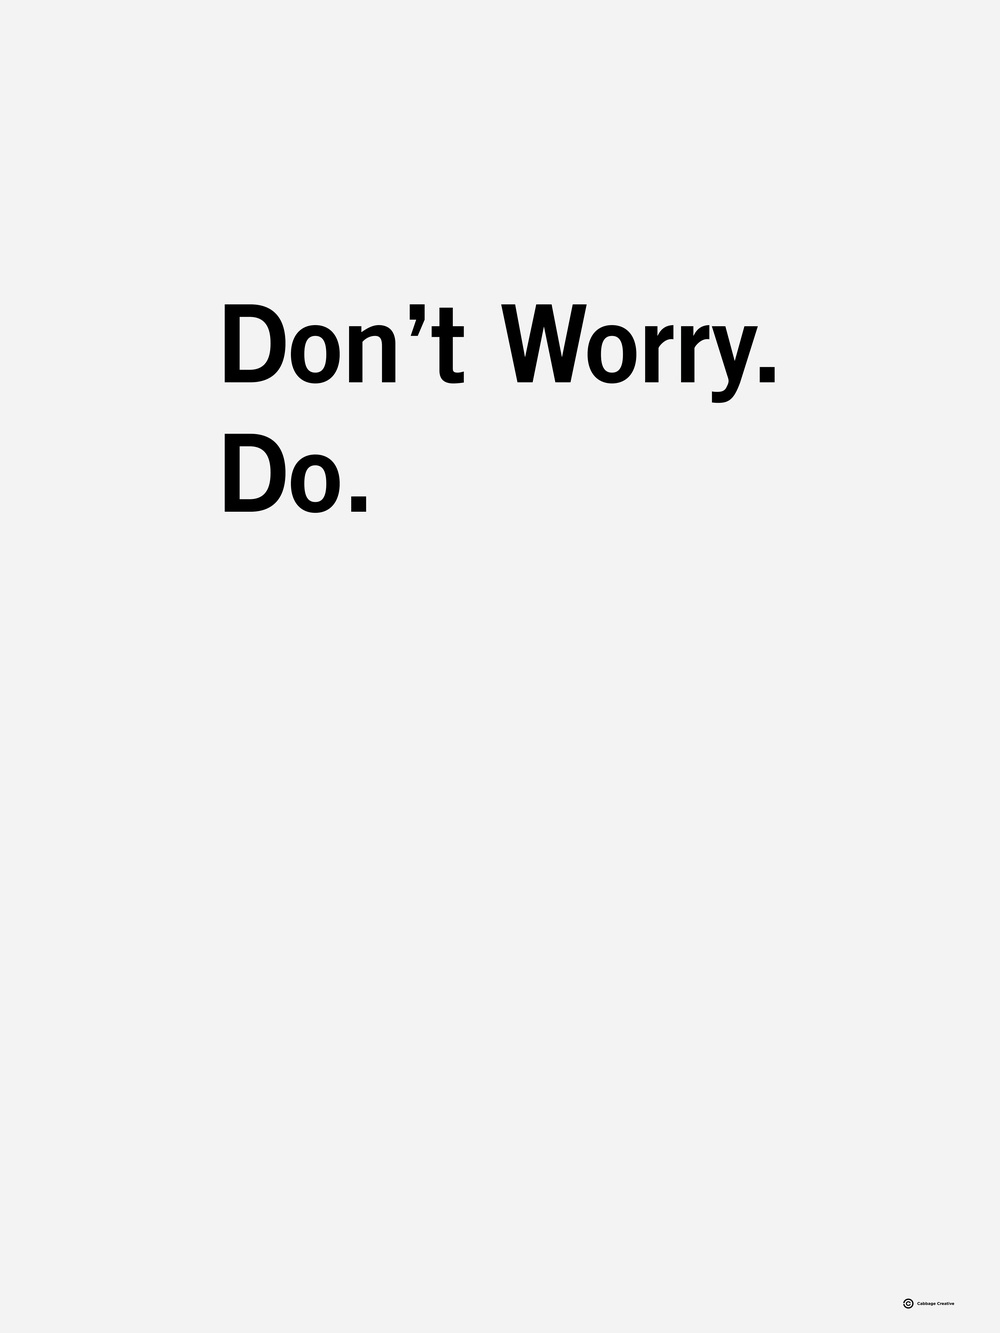 Don't Worry. Do.